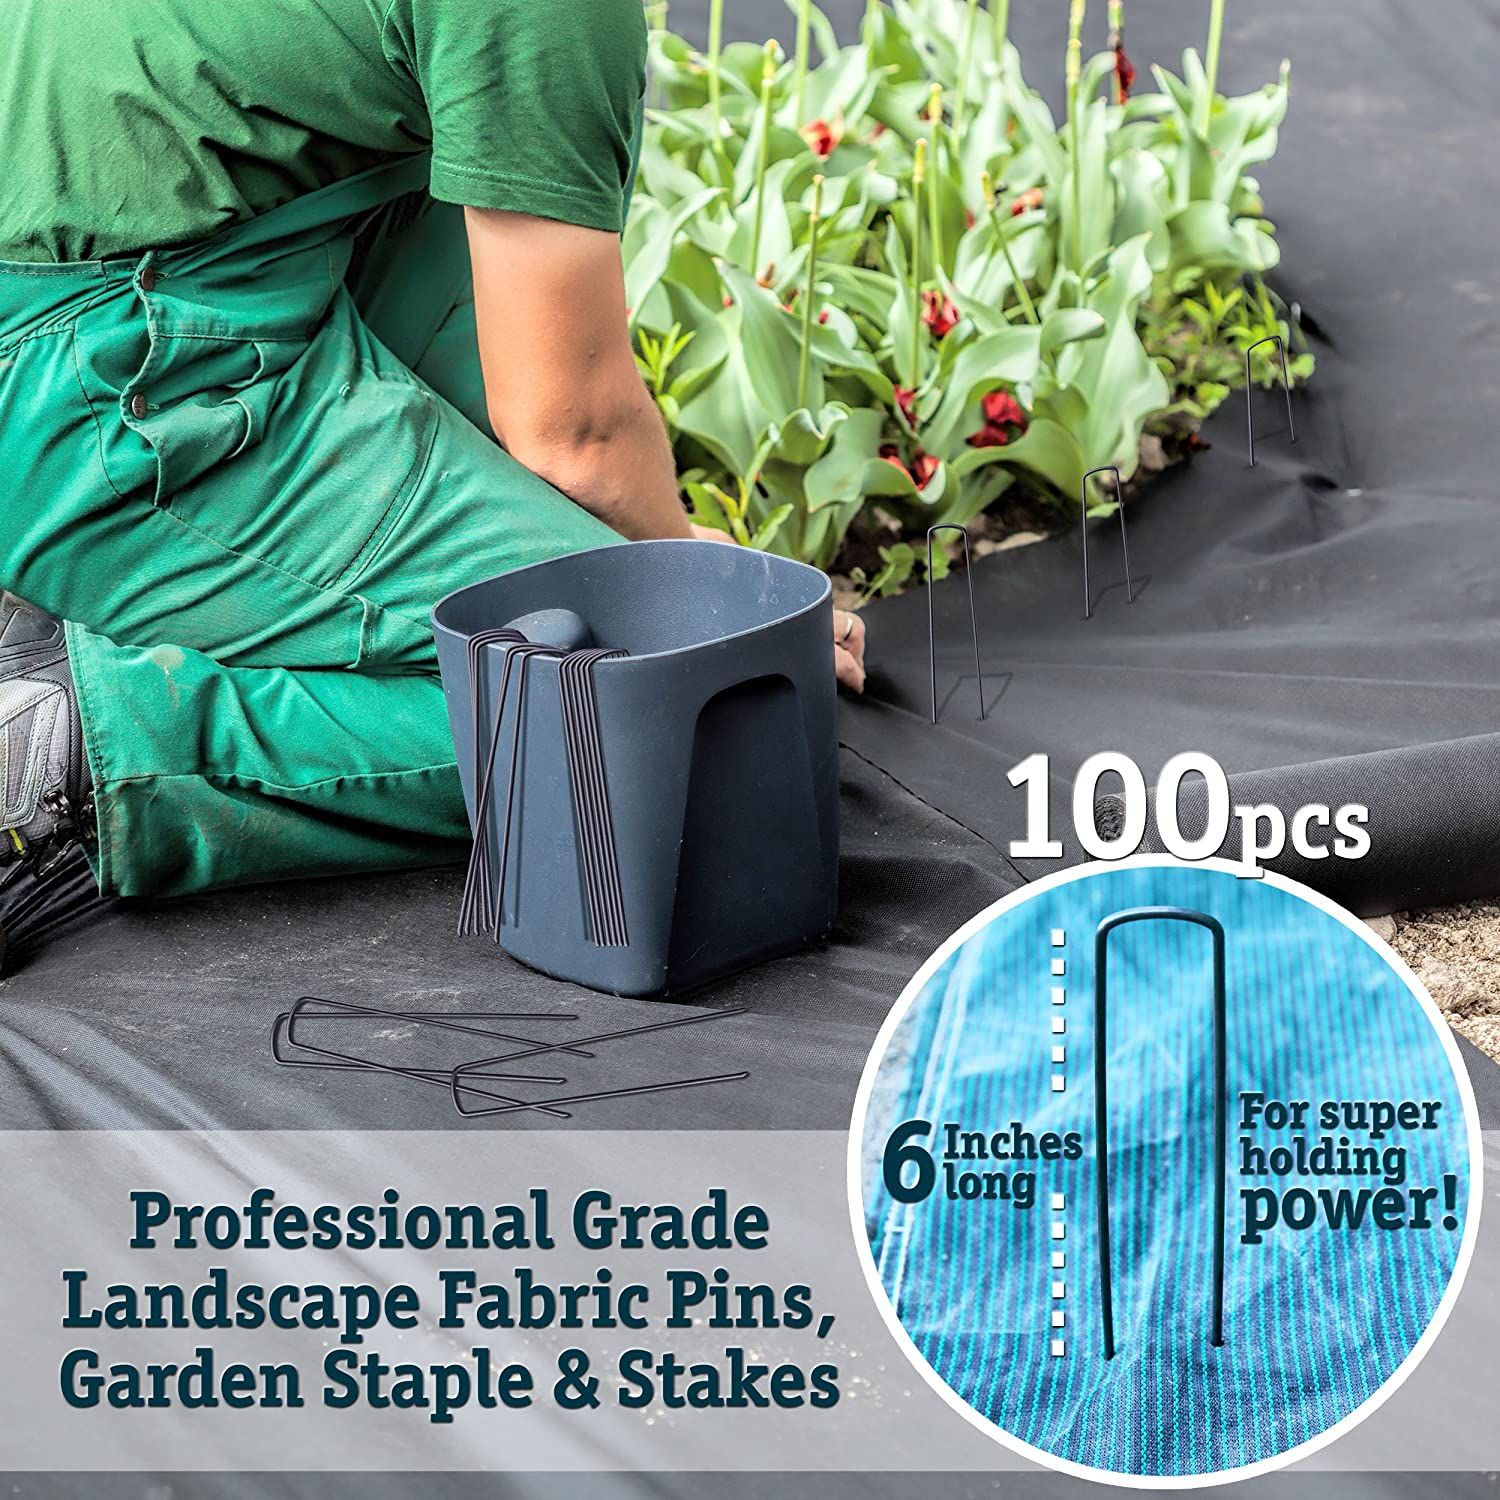 50 6-Inch Garden Landscape Staples Stakes Pins - USA Strong Pro Quality Built to Last. Weed Barrier Fabric, Ground Cover, Soaker Hose, Lawn Drippers, Irrigation Tubing, Wireless Invisible Dog Fence… : Garden & Outdoor